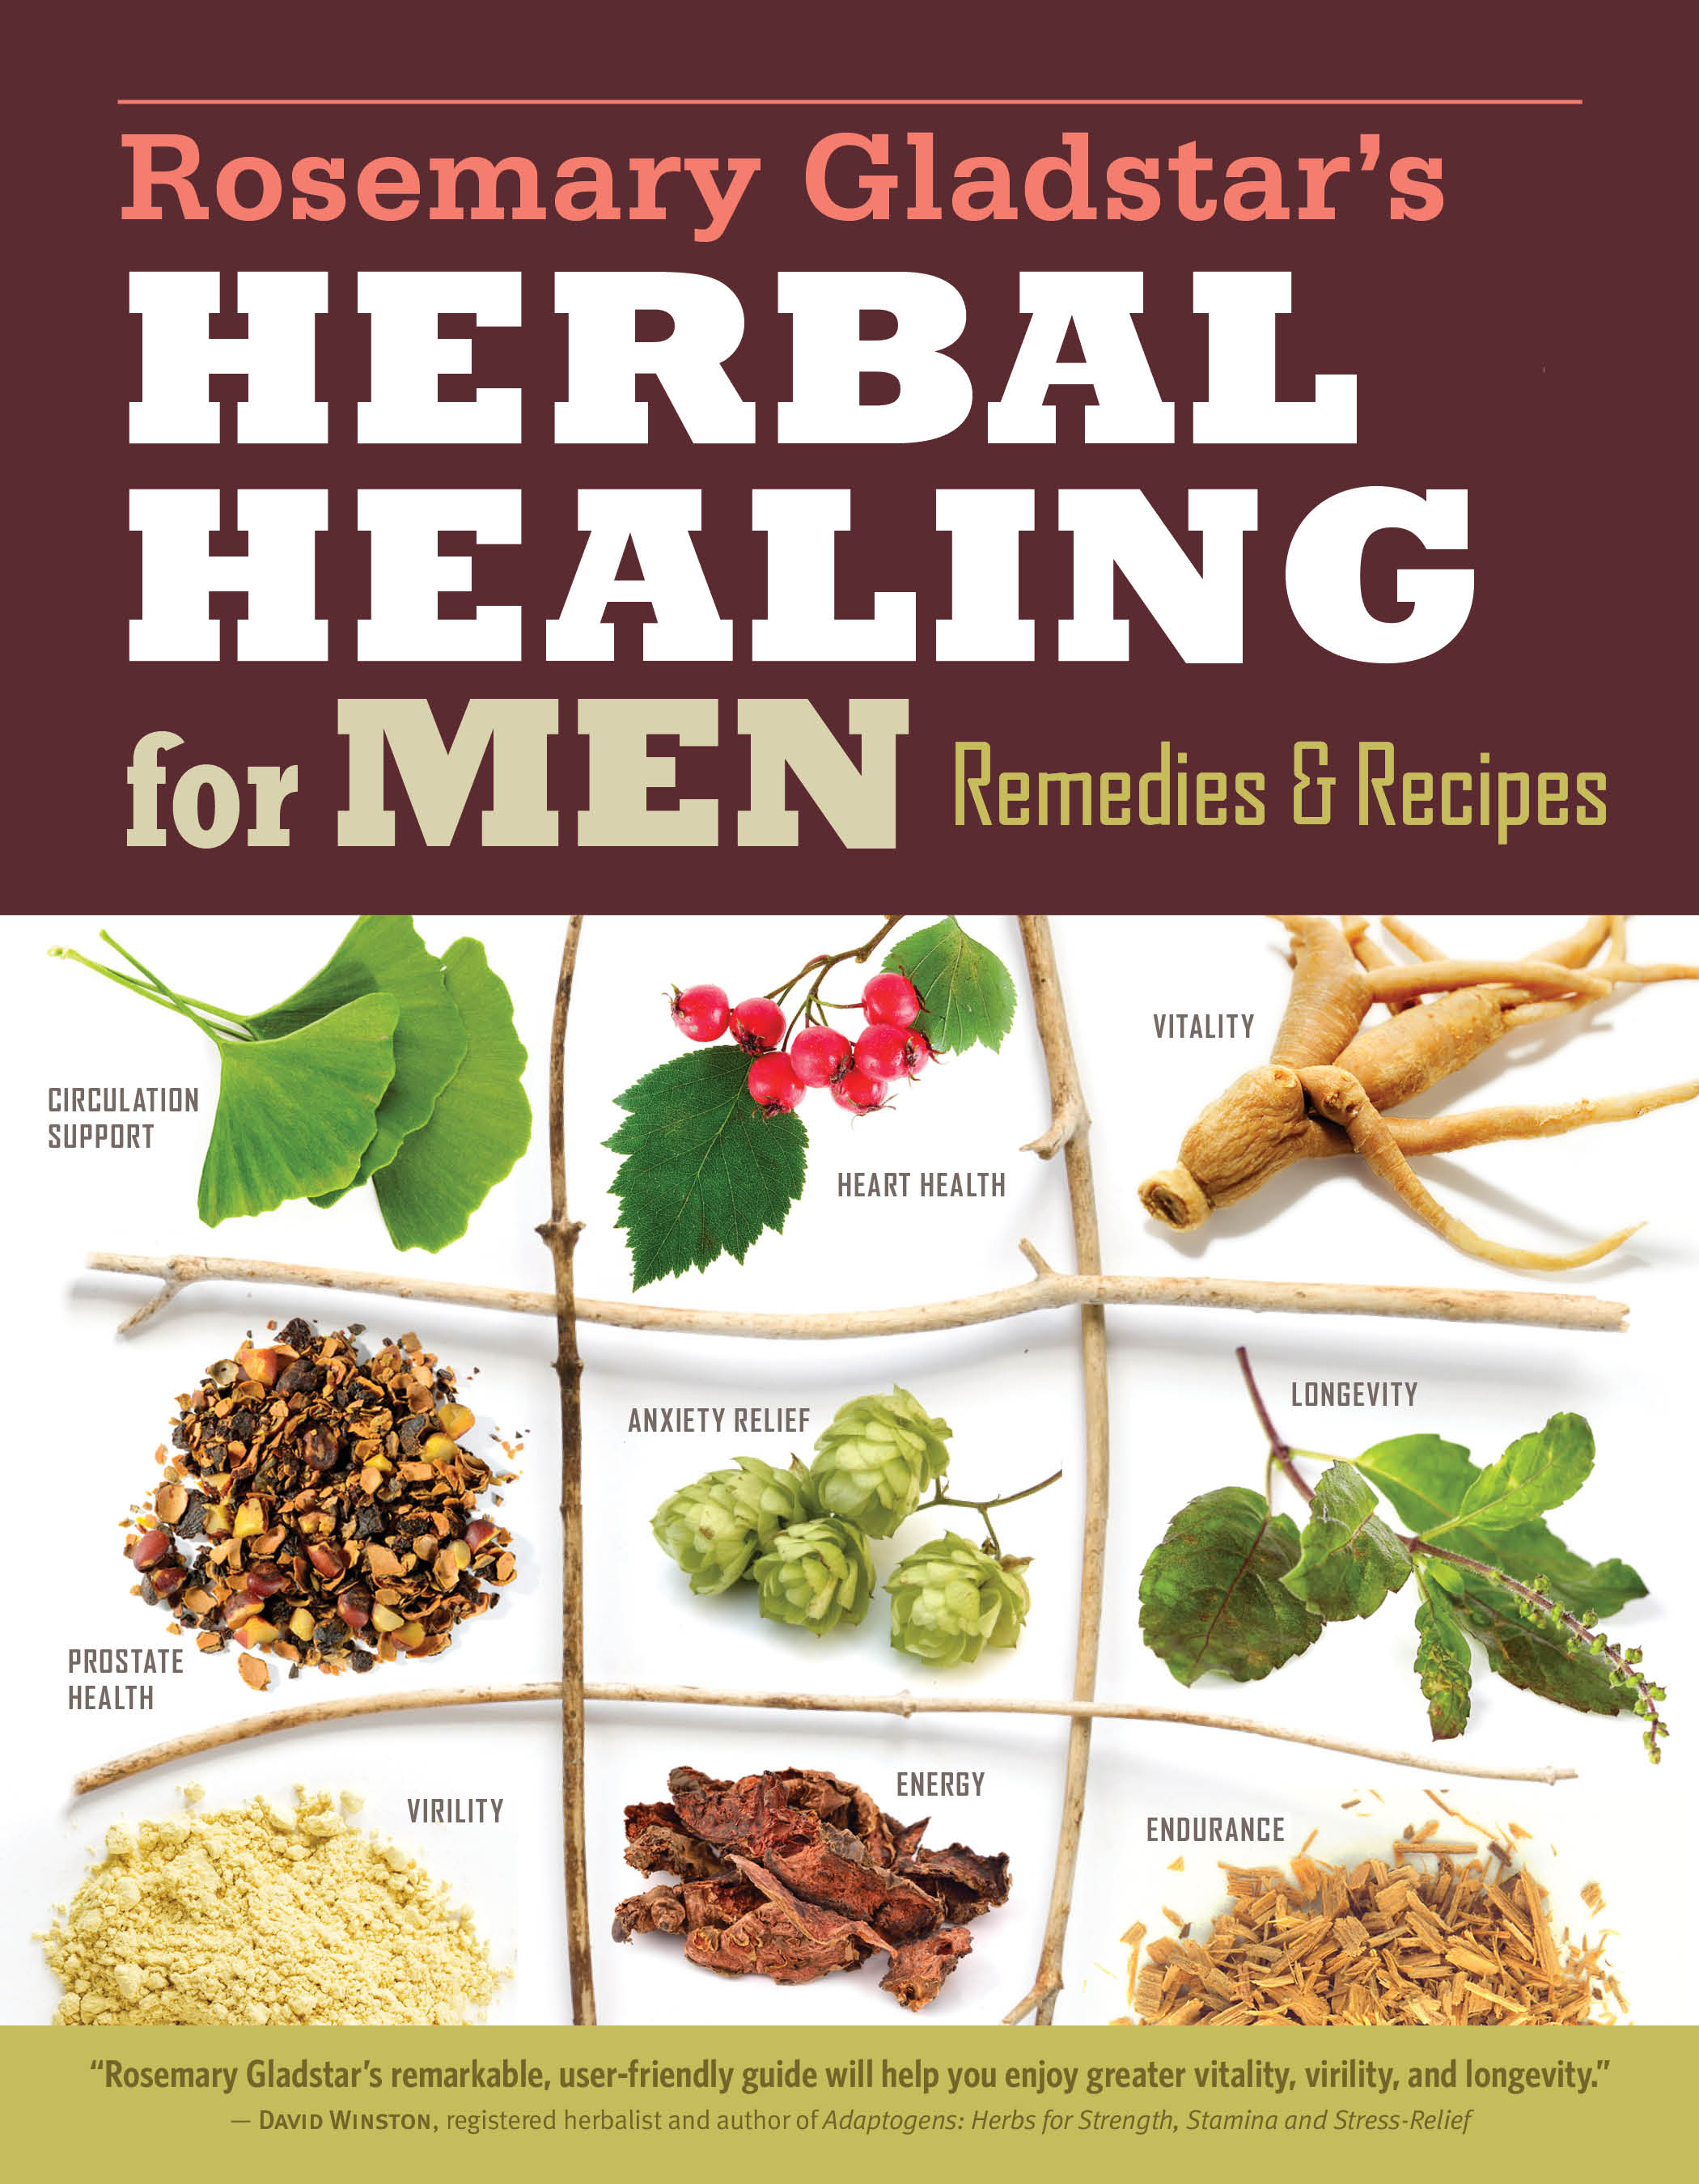 Rosemary Gladstar's Herbal Healing for Men Remedies and Recipes for Circulation Support, Heart Health, Vitality, Prostate Health, Anxiety Relief, Longevity, Virility, Energy & Endurance - Rosemary Gladstar